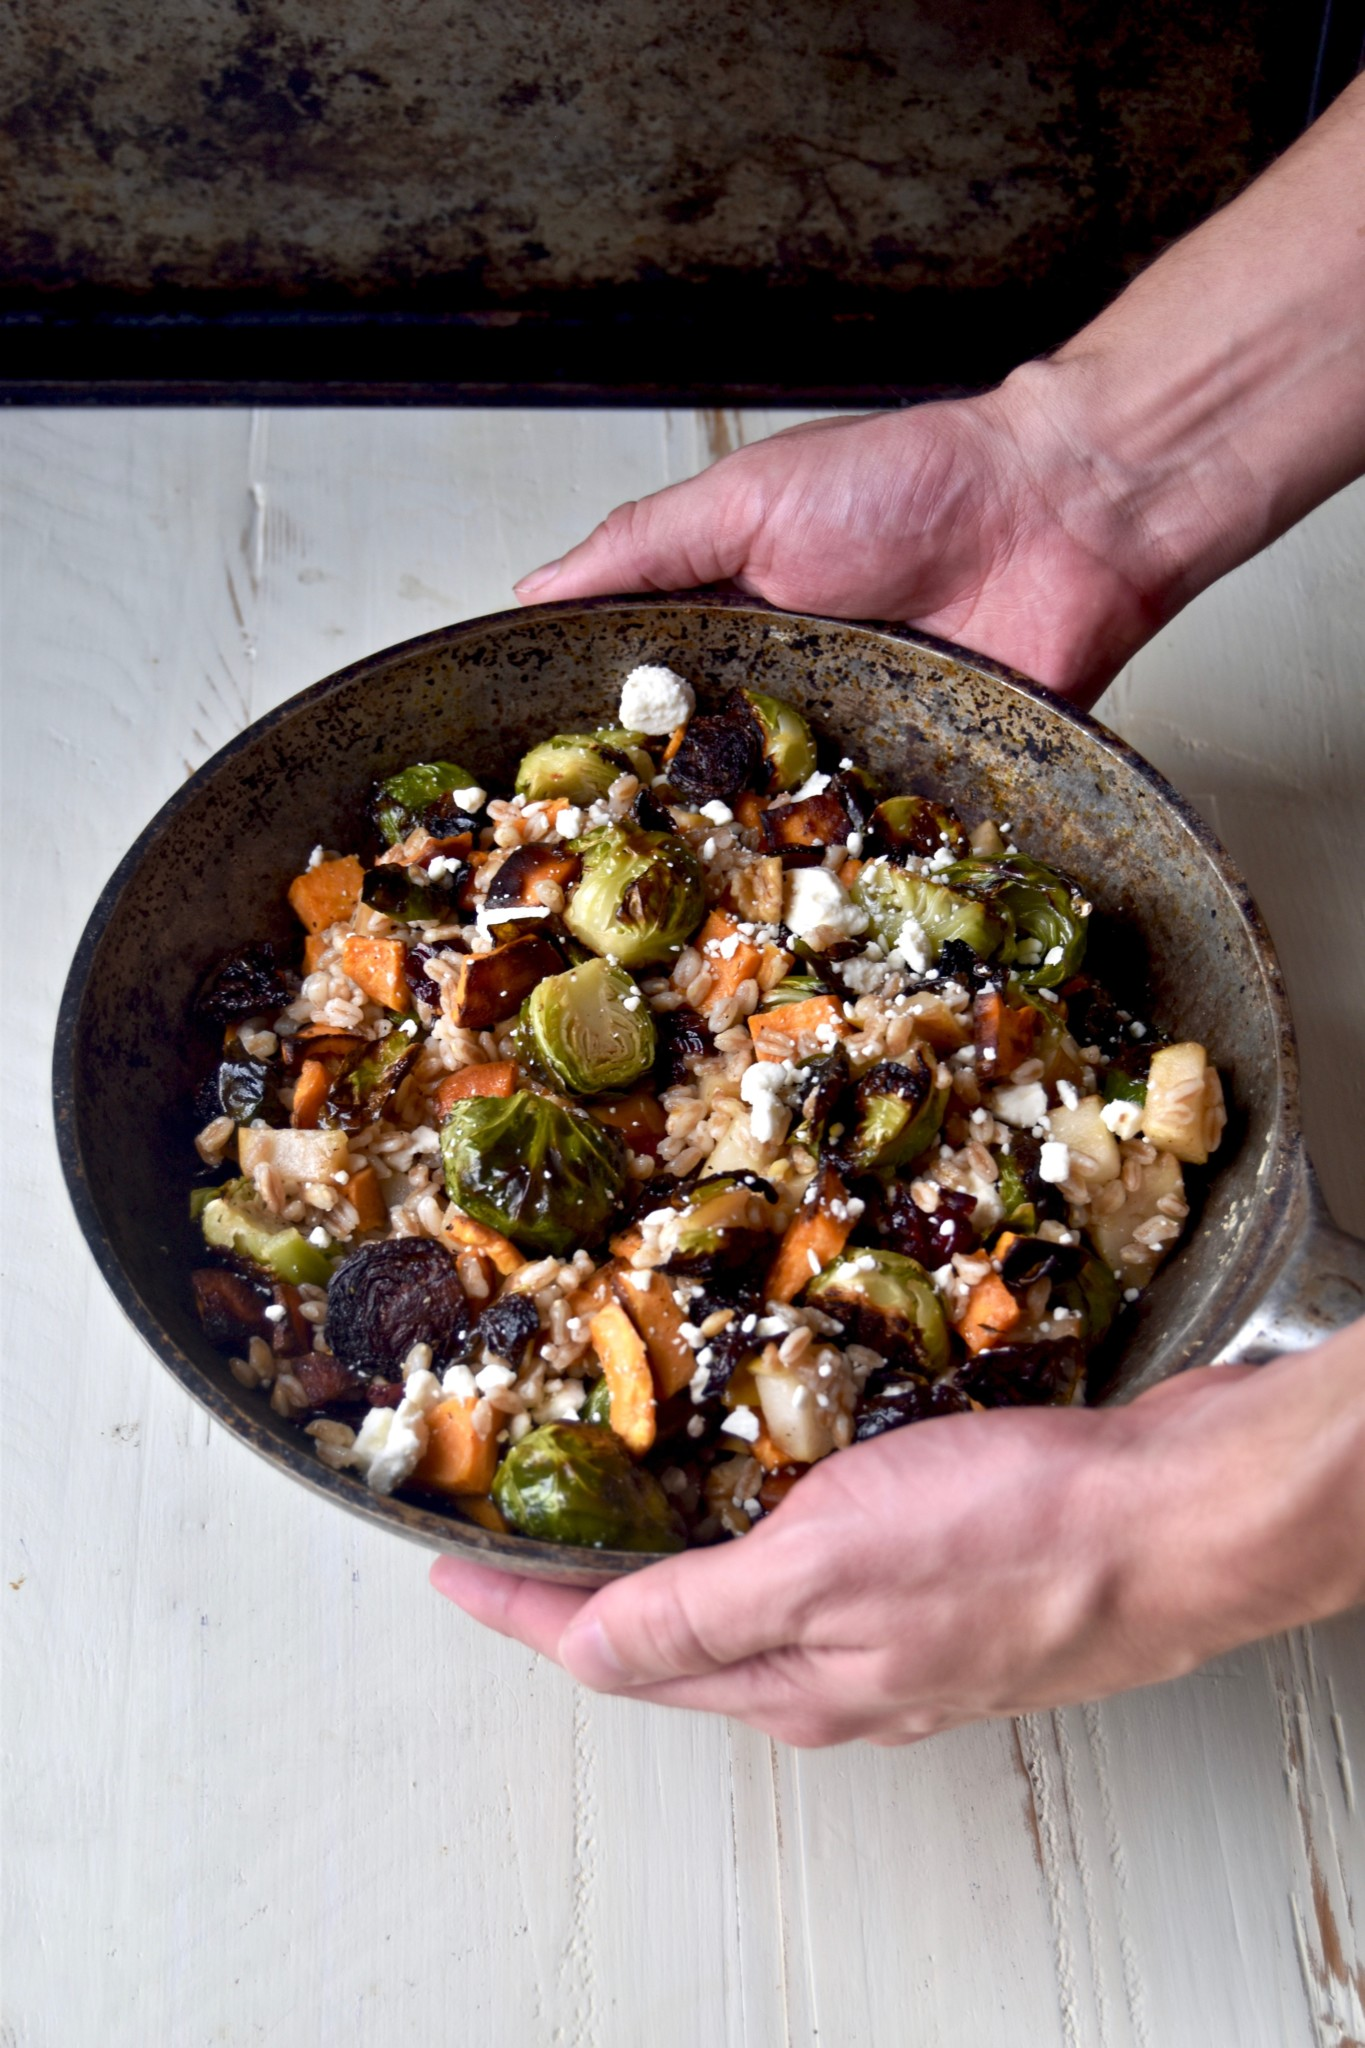 roasted harvest vegetable farro & feta bowl - a delicious autumn-inspired meal that comes together quickly and warms the soul // cait's plate